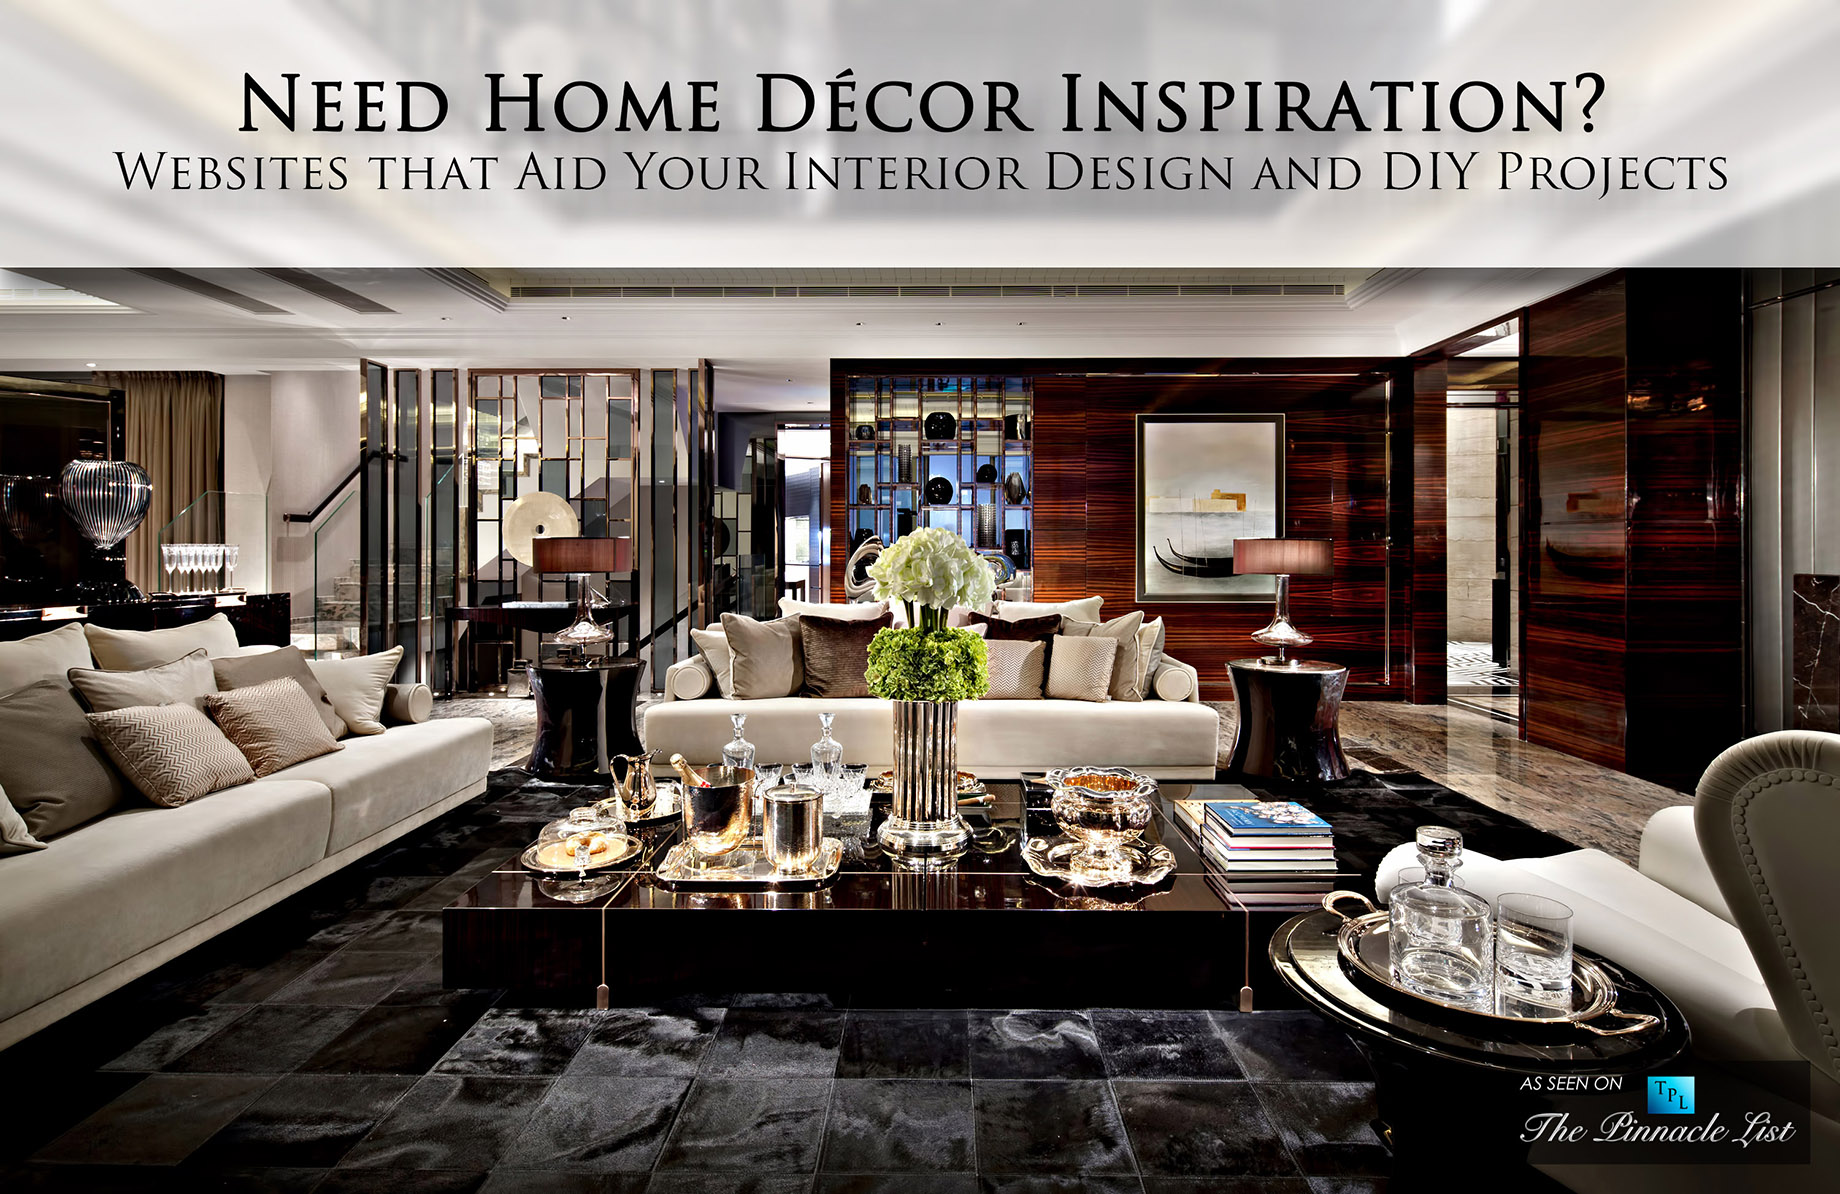 Need Home Decor Inspiration Websites That Aid Your Interior Design And Diy Projects The Pinnacle List